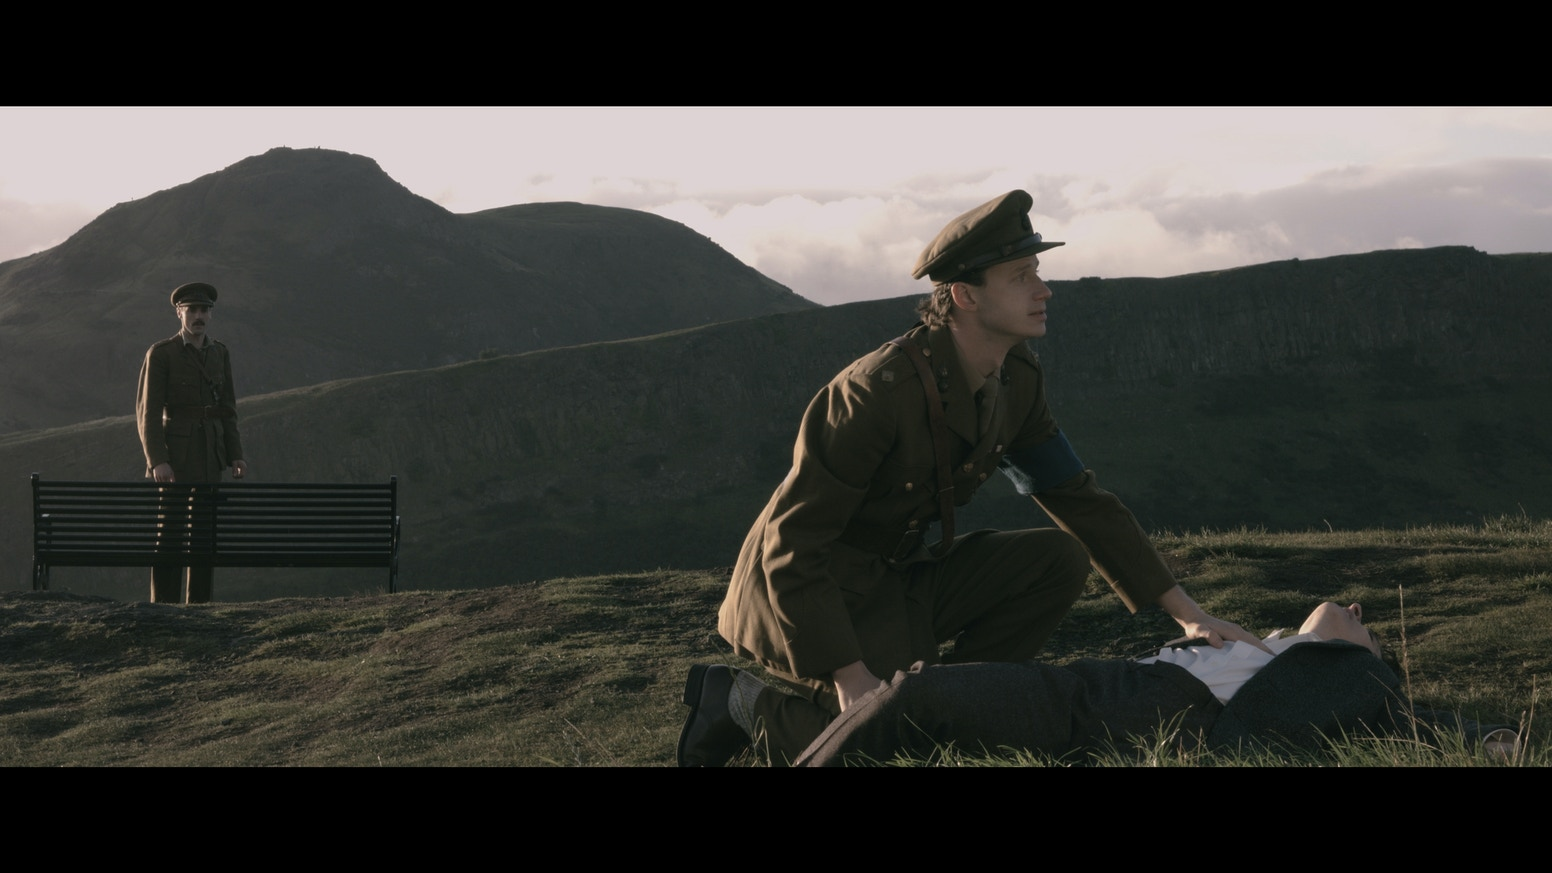 A film following the incredible life of poet Wilfred Owen, in time for the 100 year anniversary of his death